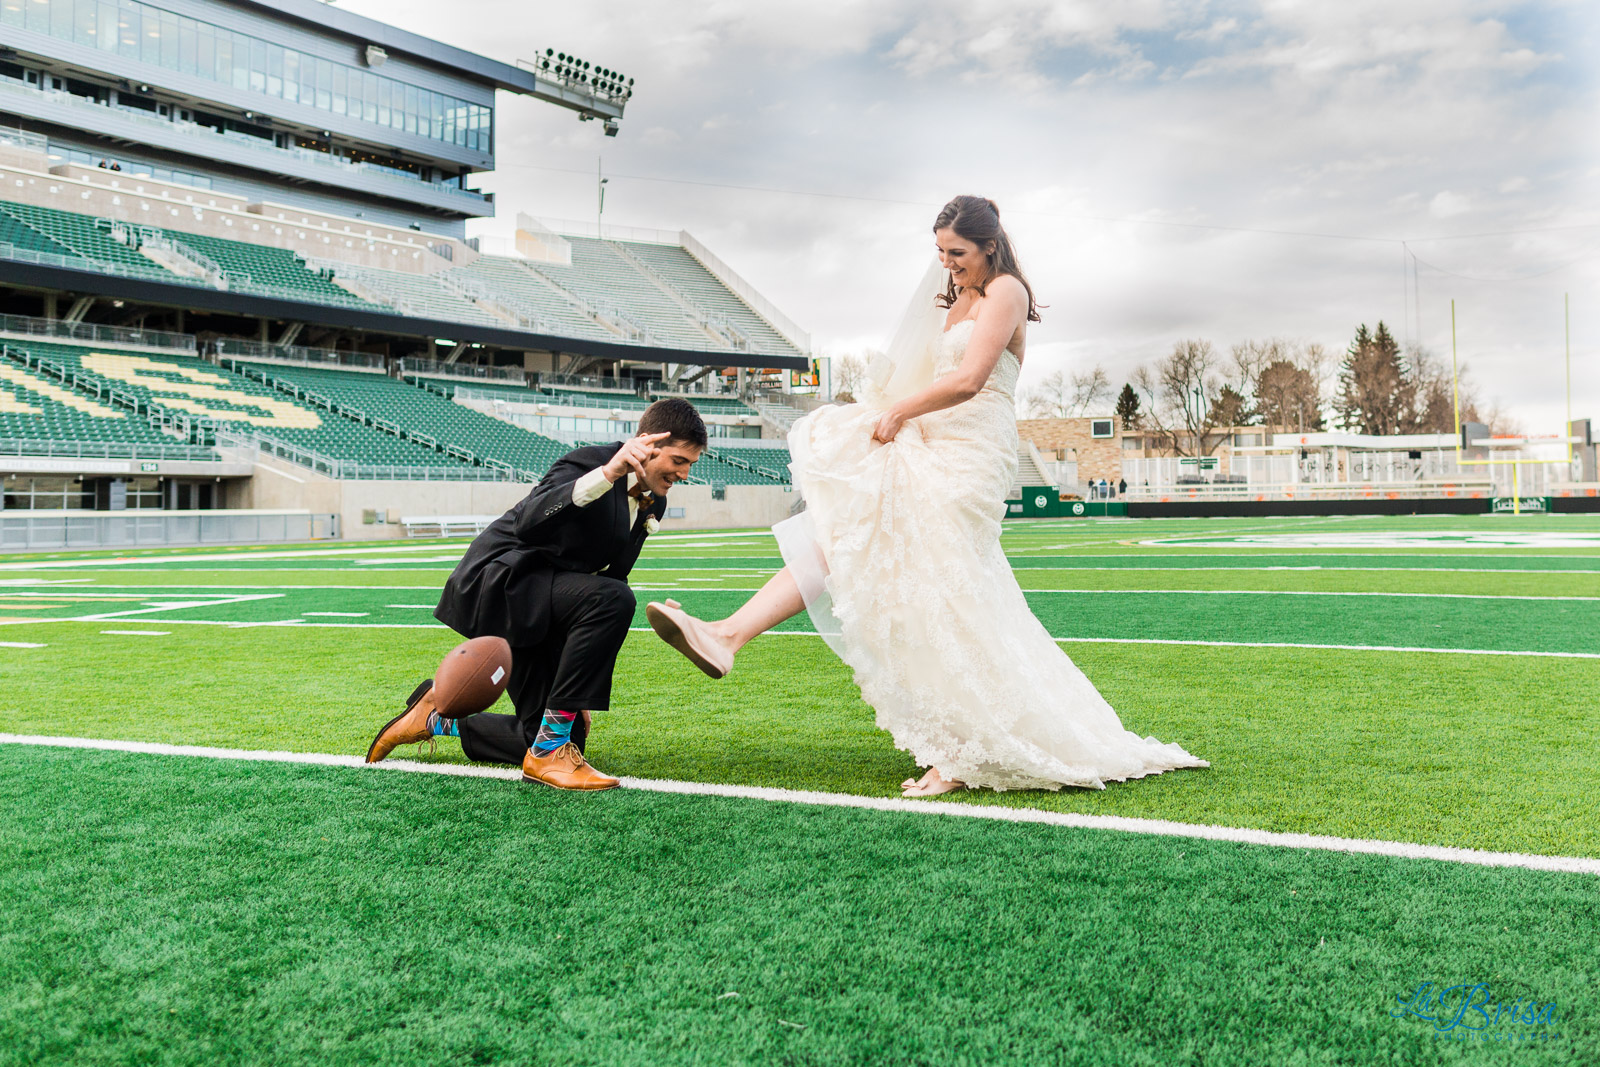 Bride kicking field goals groom placeholder colorado state football stadium